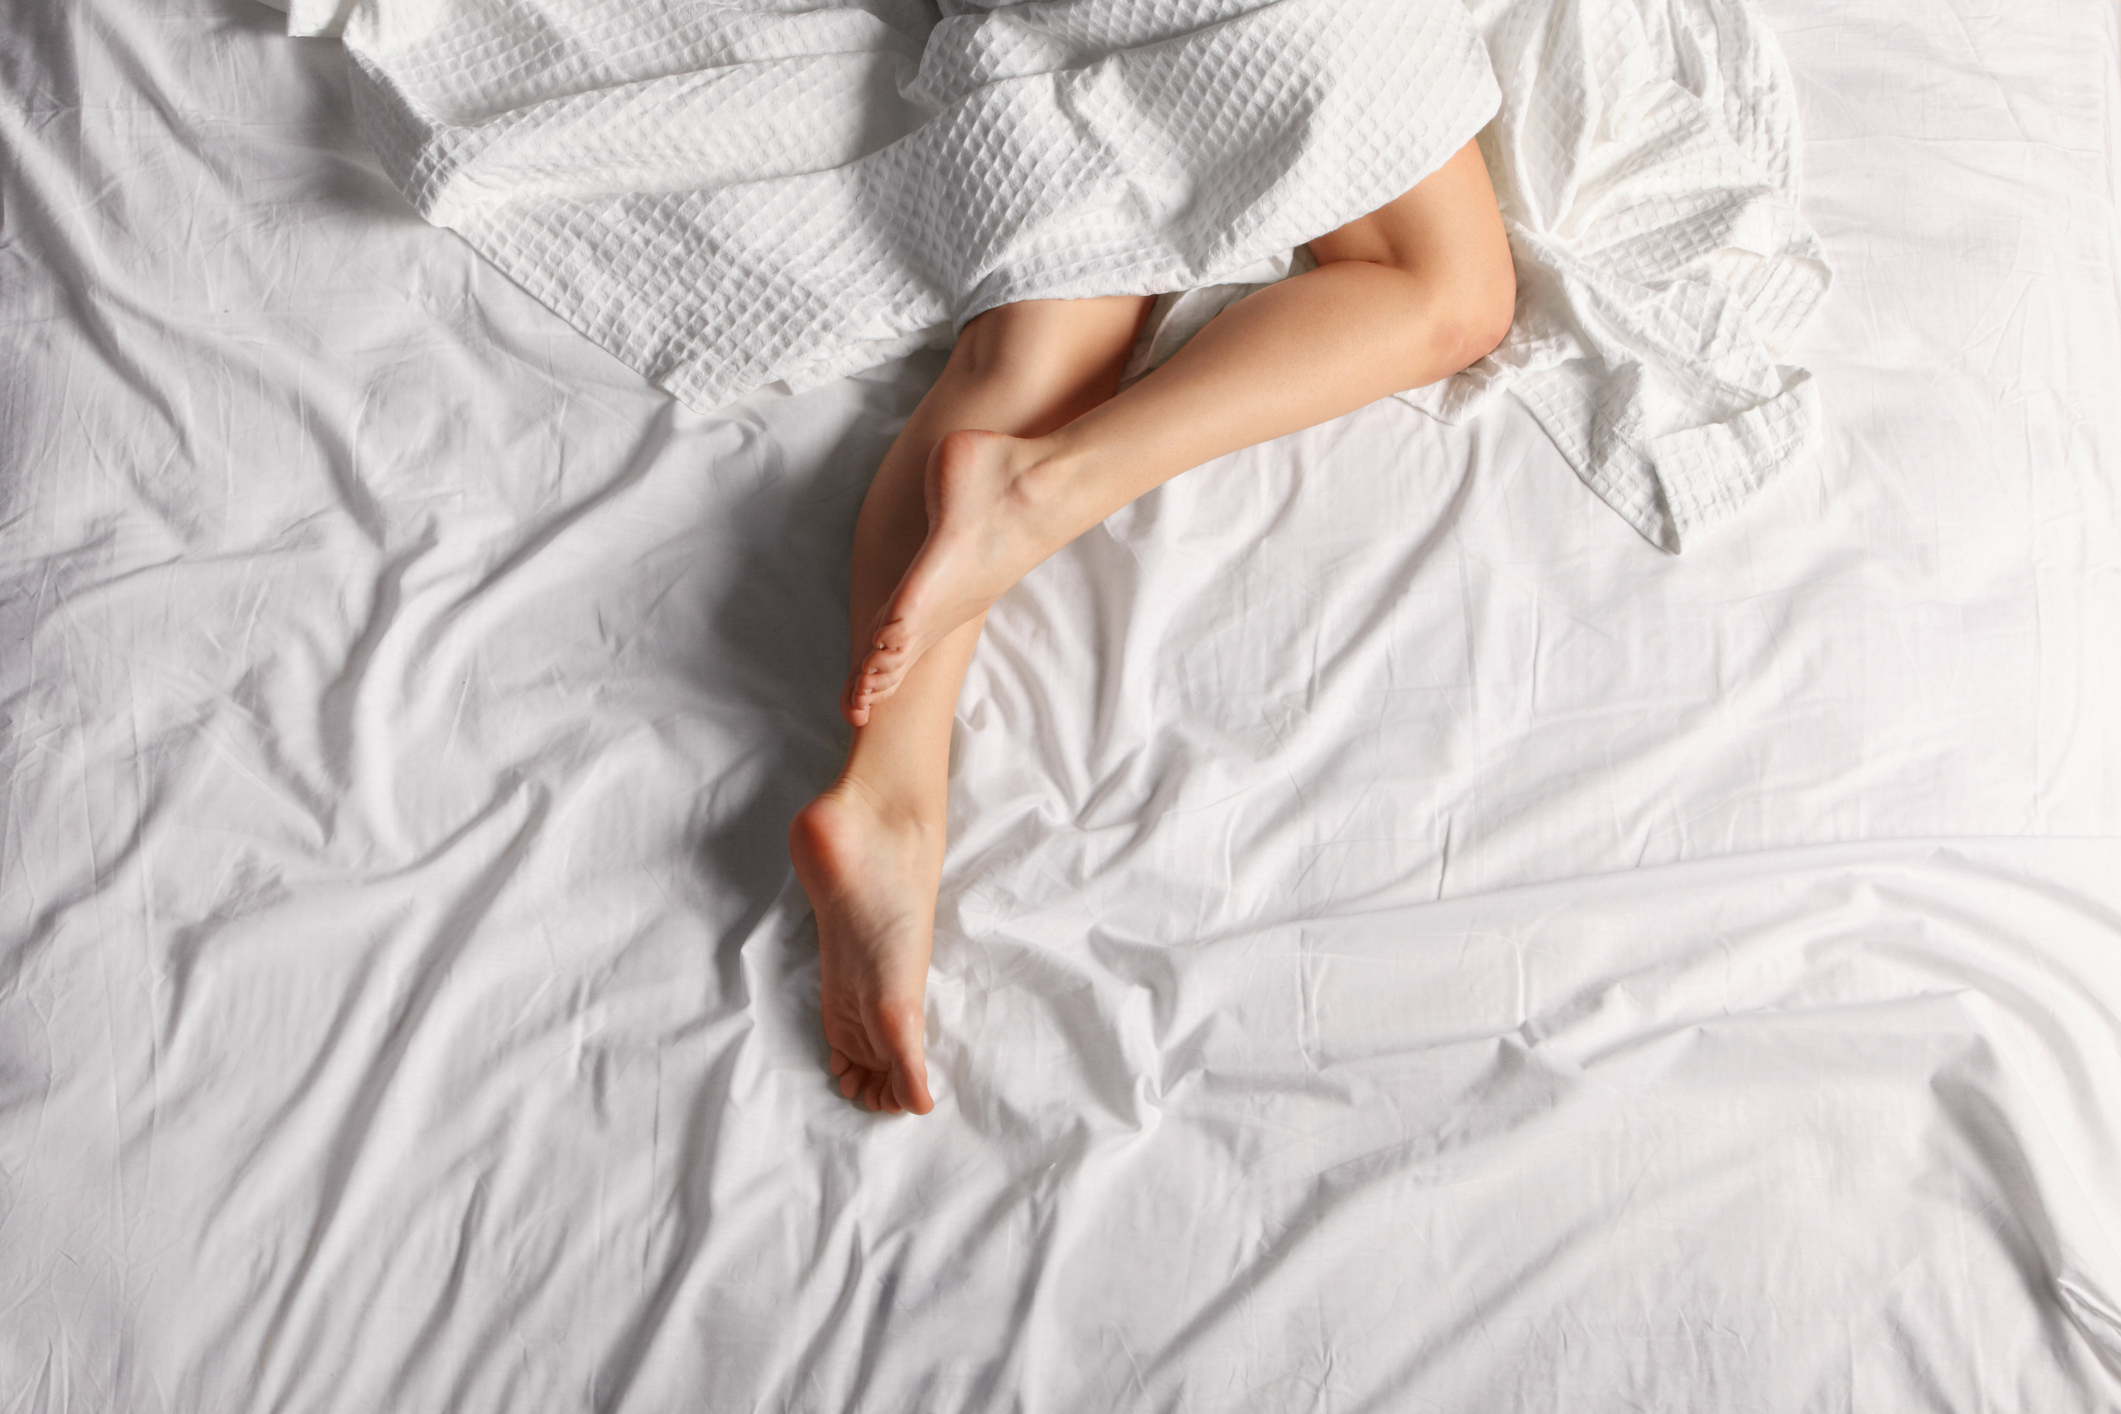 Woman's naked legs under a sheet (Thinkstock/PA)